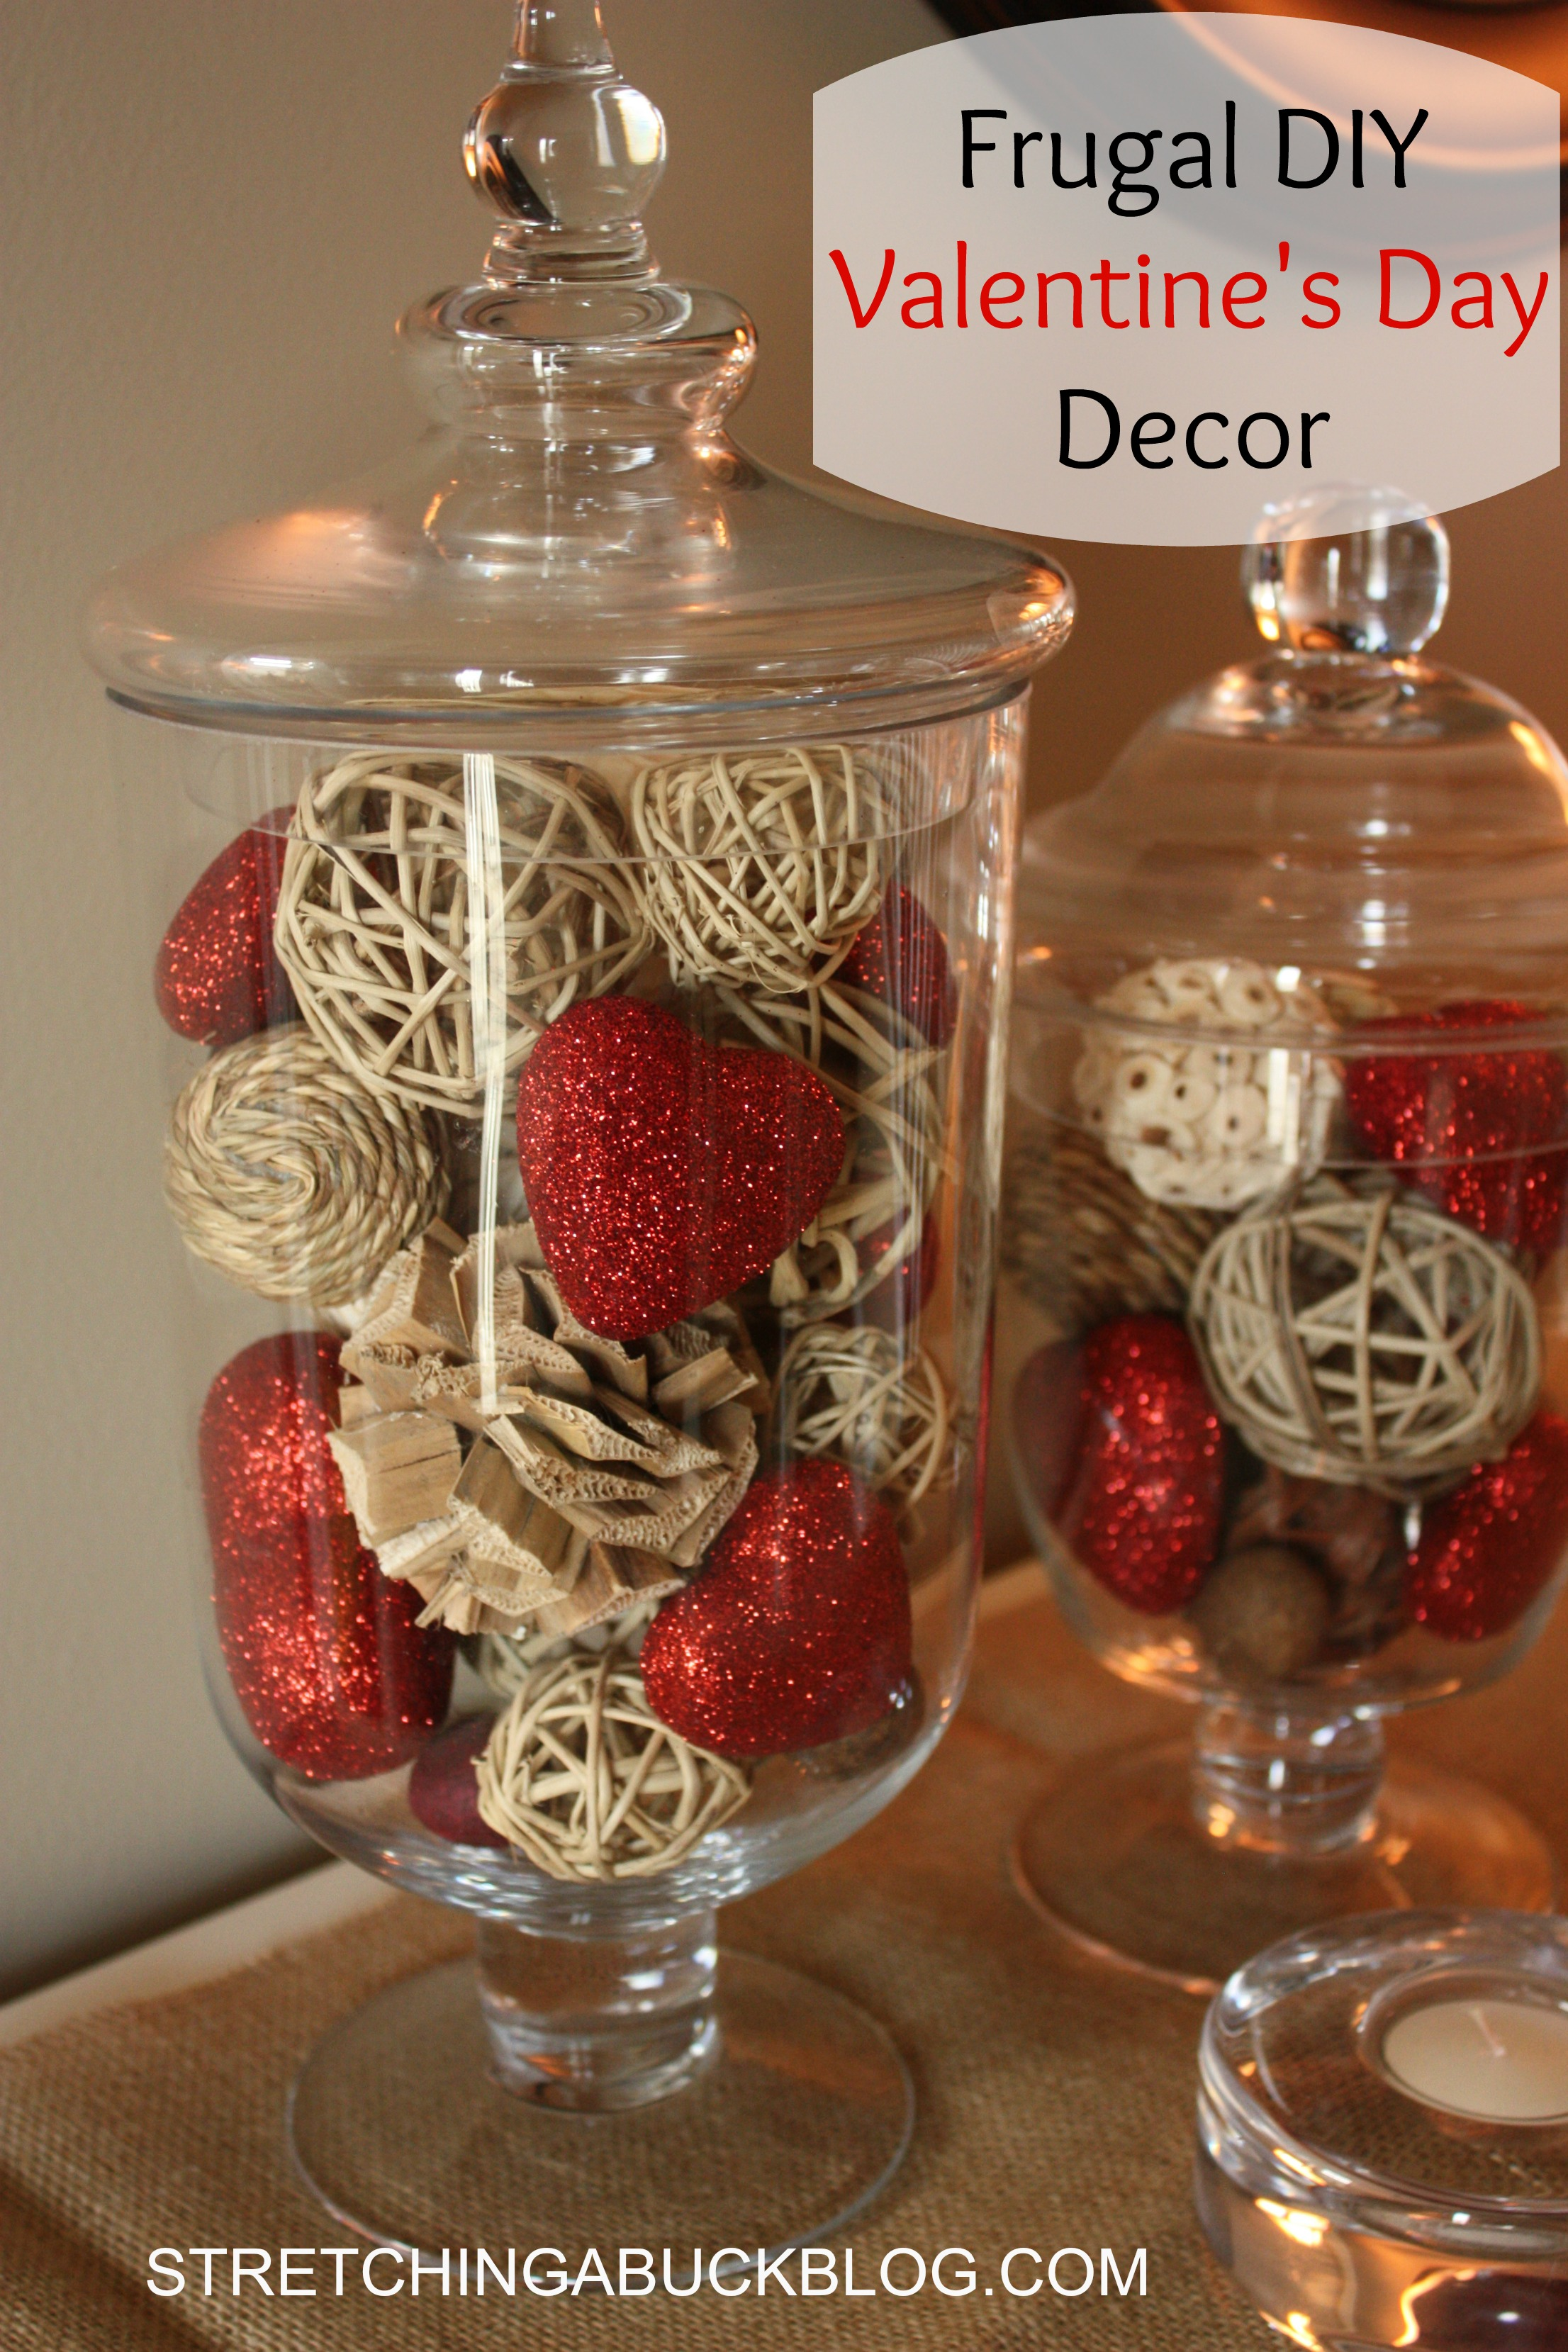 11 frugal diy valentine 39 s day decor ideas stretching a